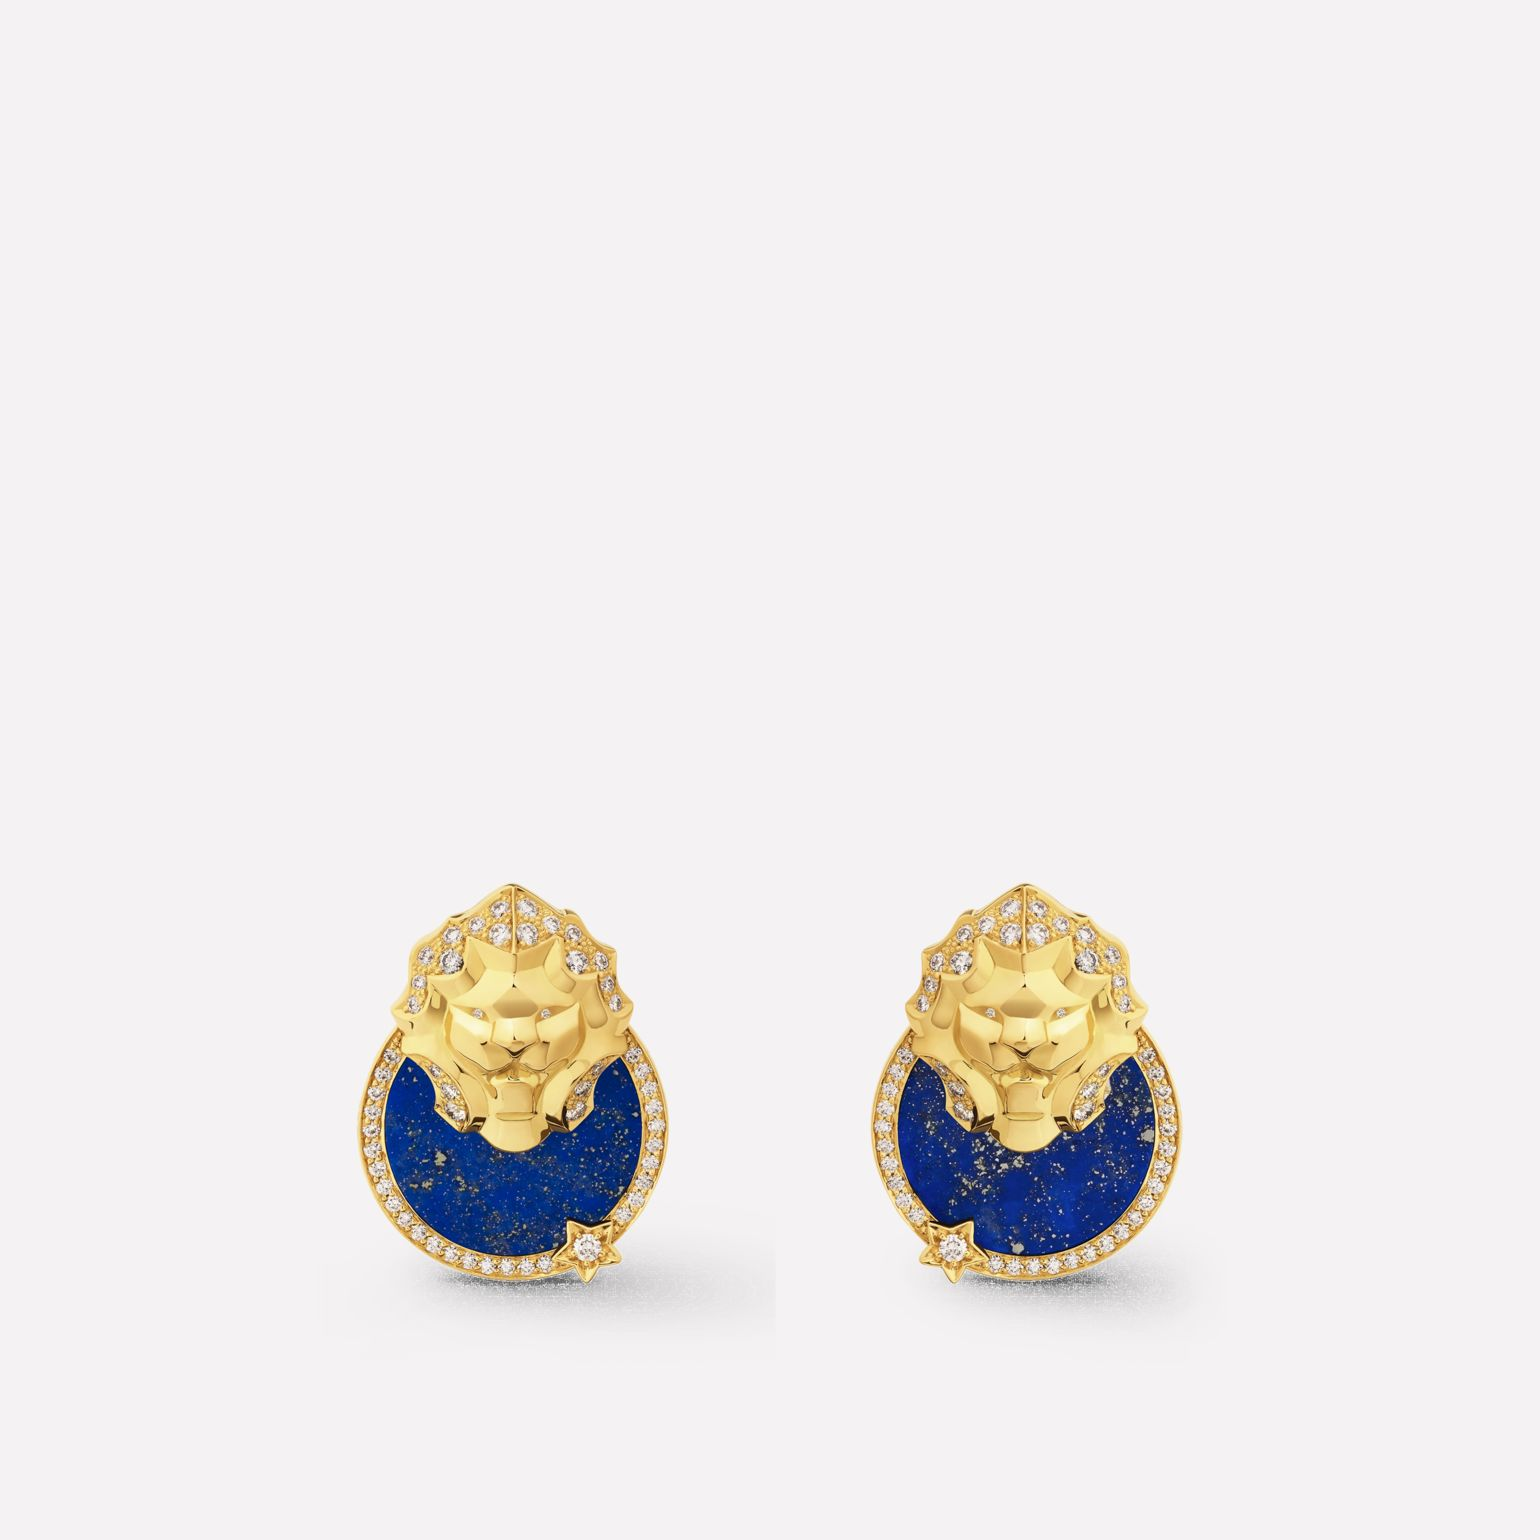 Sous le Signe du Lion earrings Lion Médaille earrings in 18K  yellow gold, diamonds and lapis lazuli